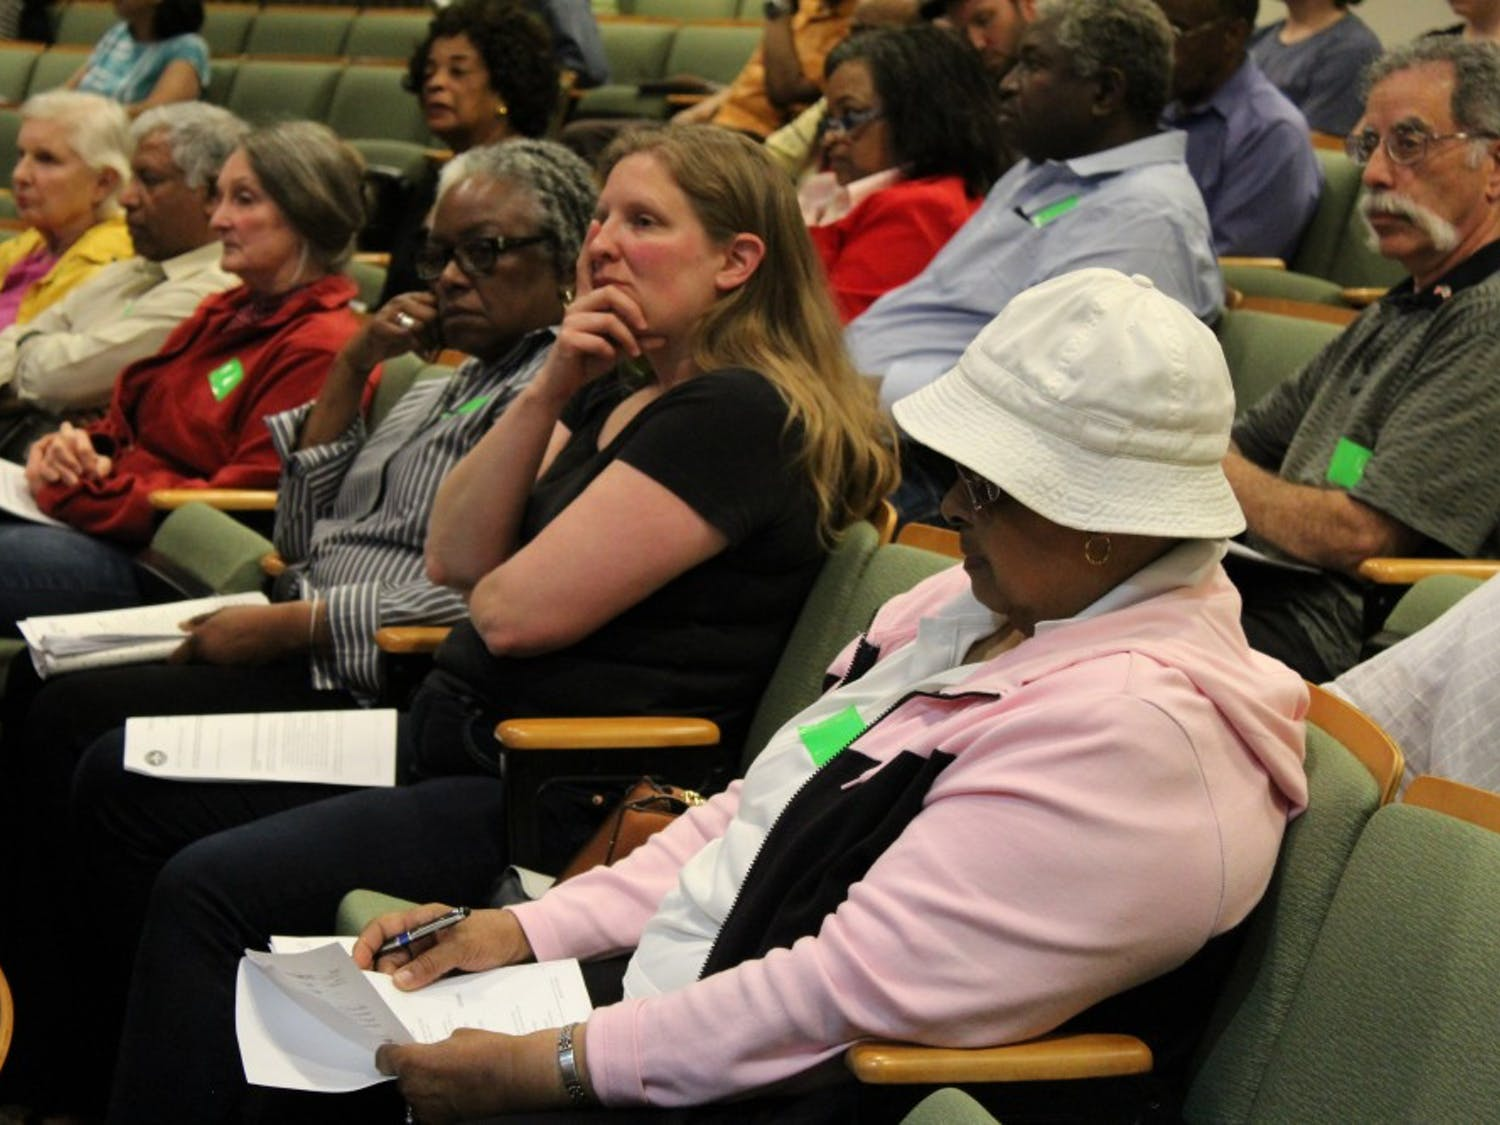 On Wednesday, April 17, 2019 the Chapel Hill Town Council holds a public hearing at Chapel Hill Town Hall for the historic Rodgers Road rezoning initiative. Residents and other supporters wore green tape to show their support for the rezoning movement.